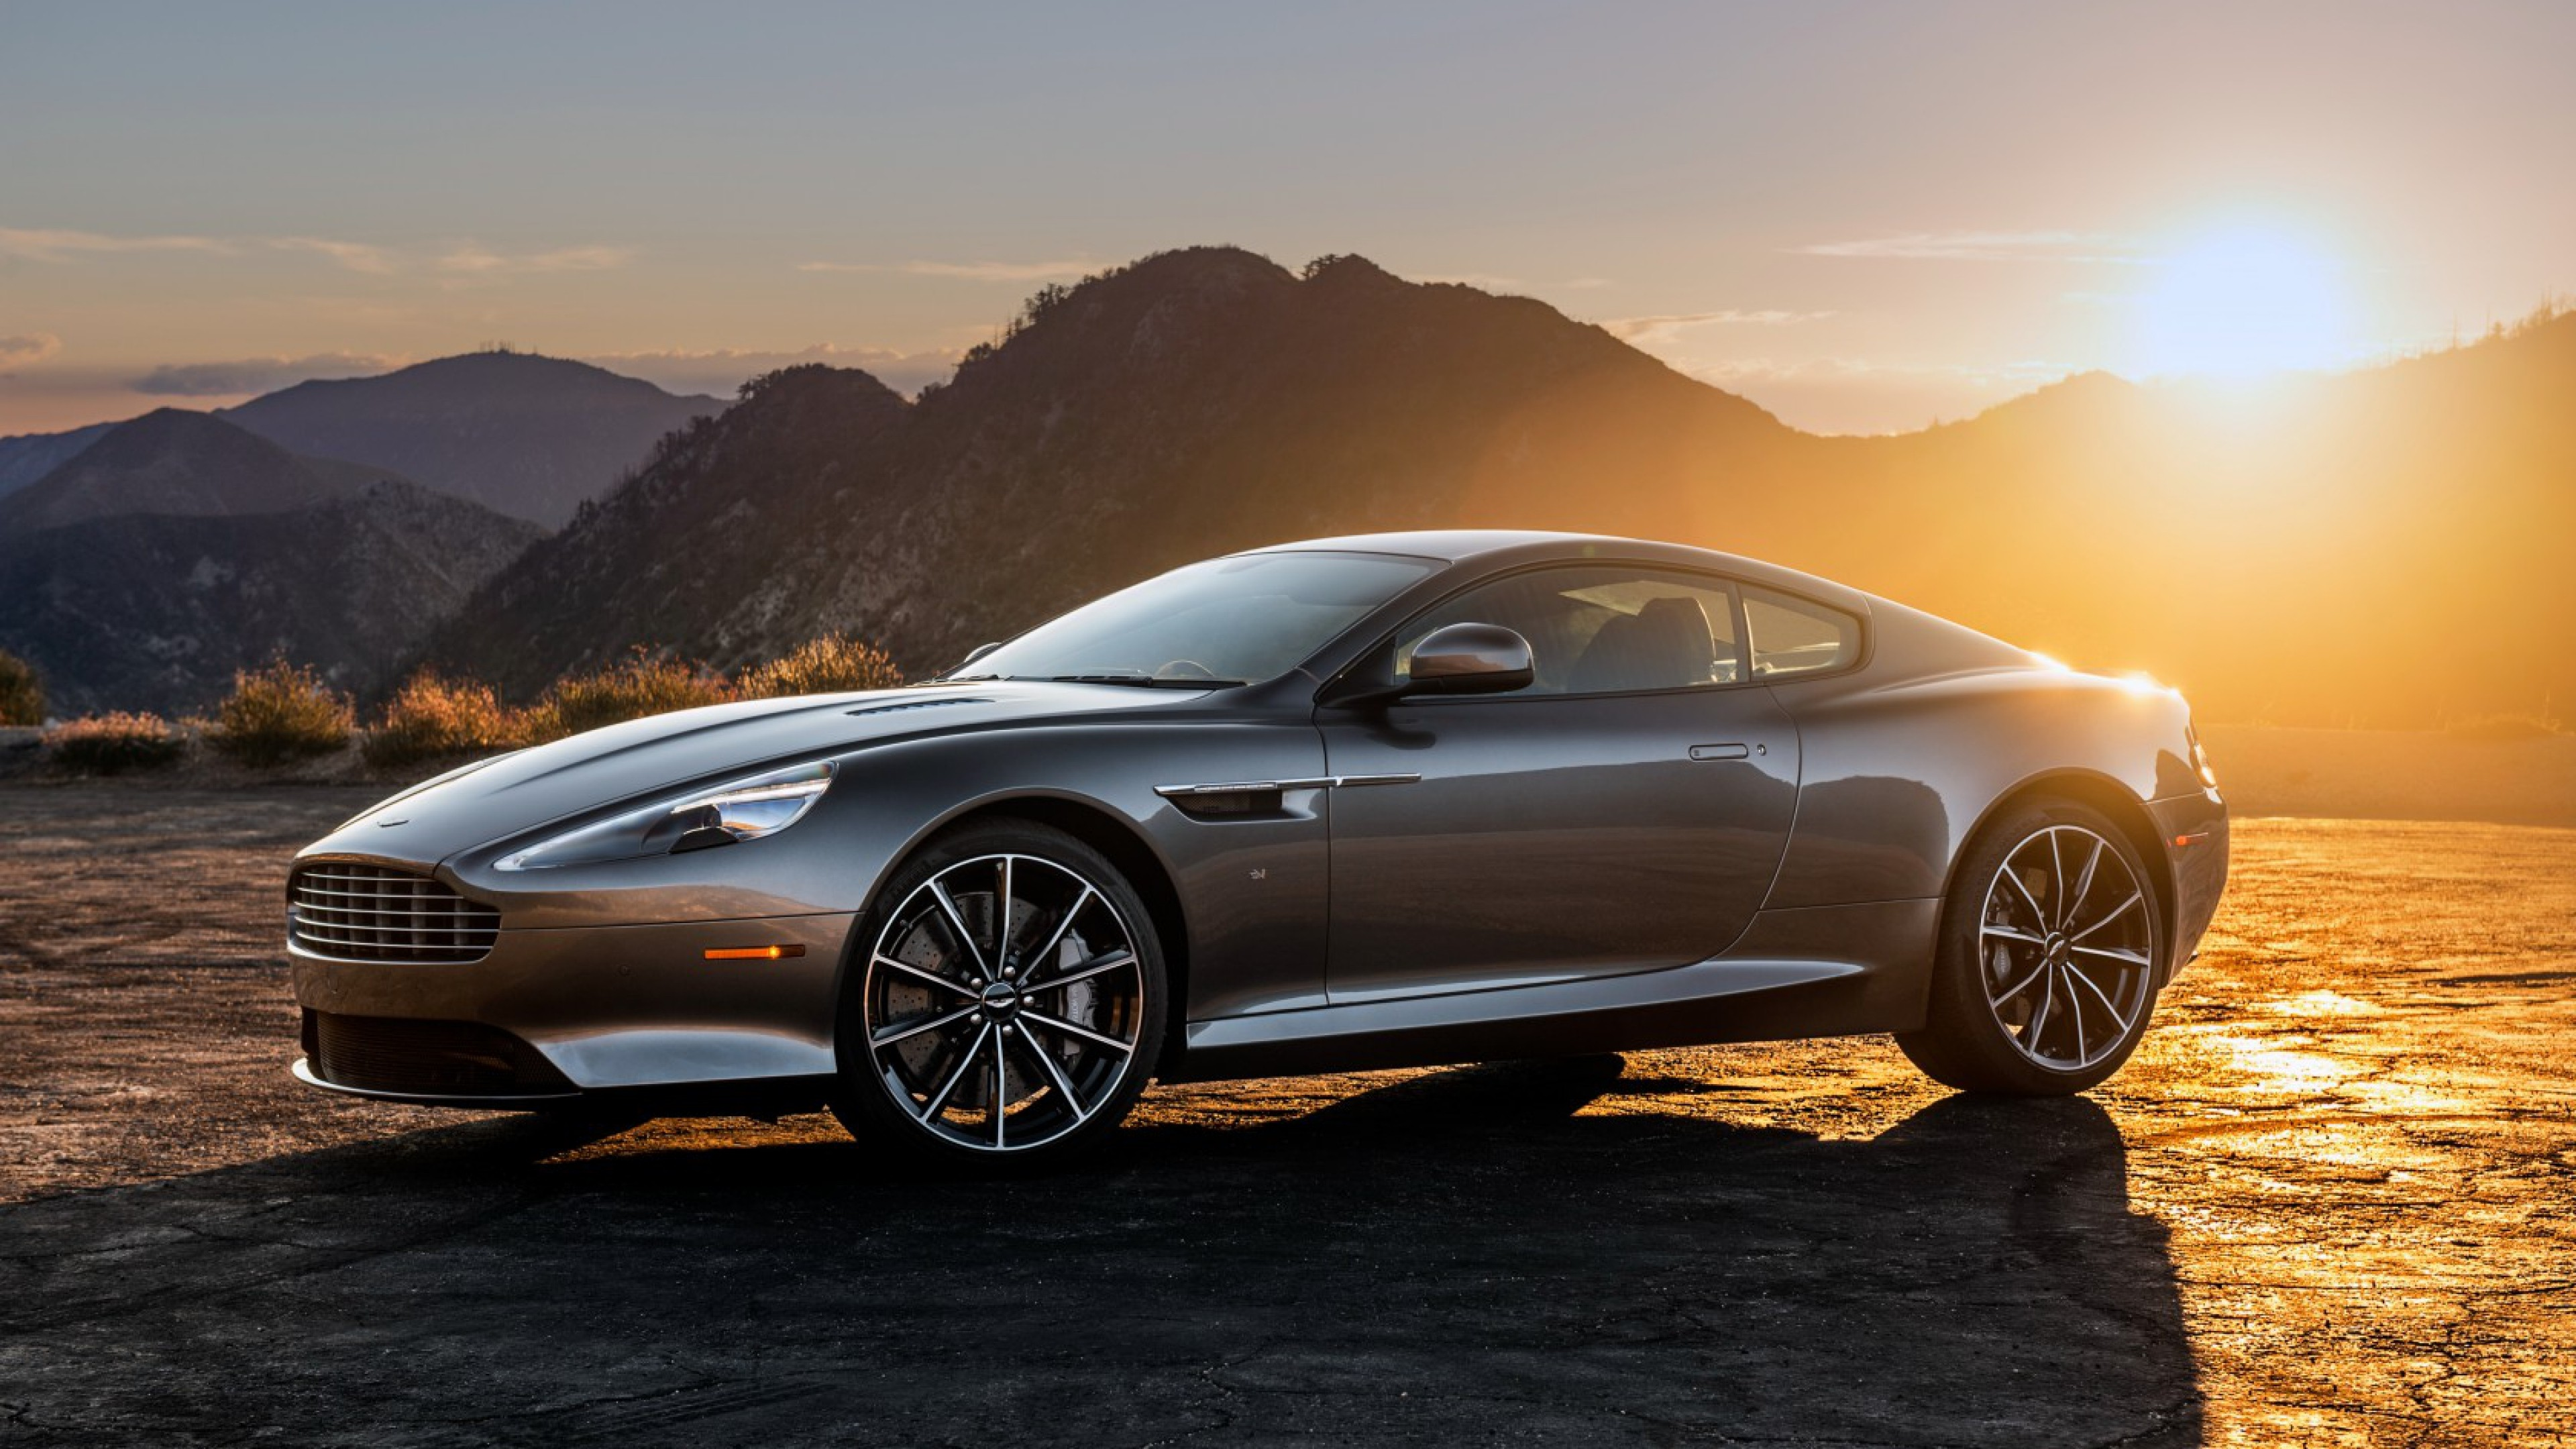 Aston Martin Db9 Hd Cars 4k Wallpapers Images